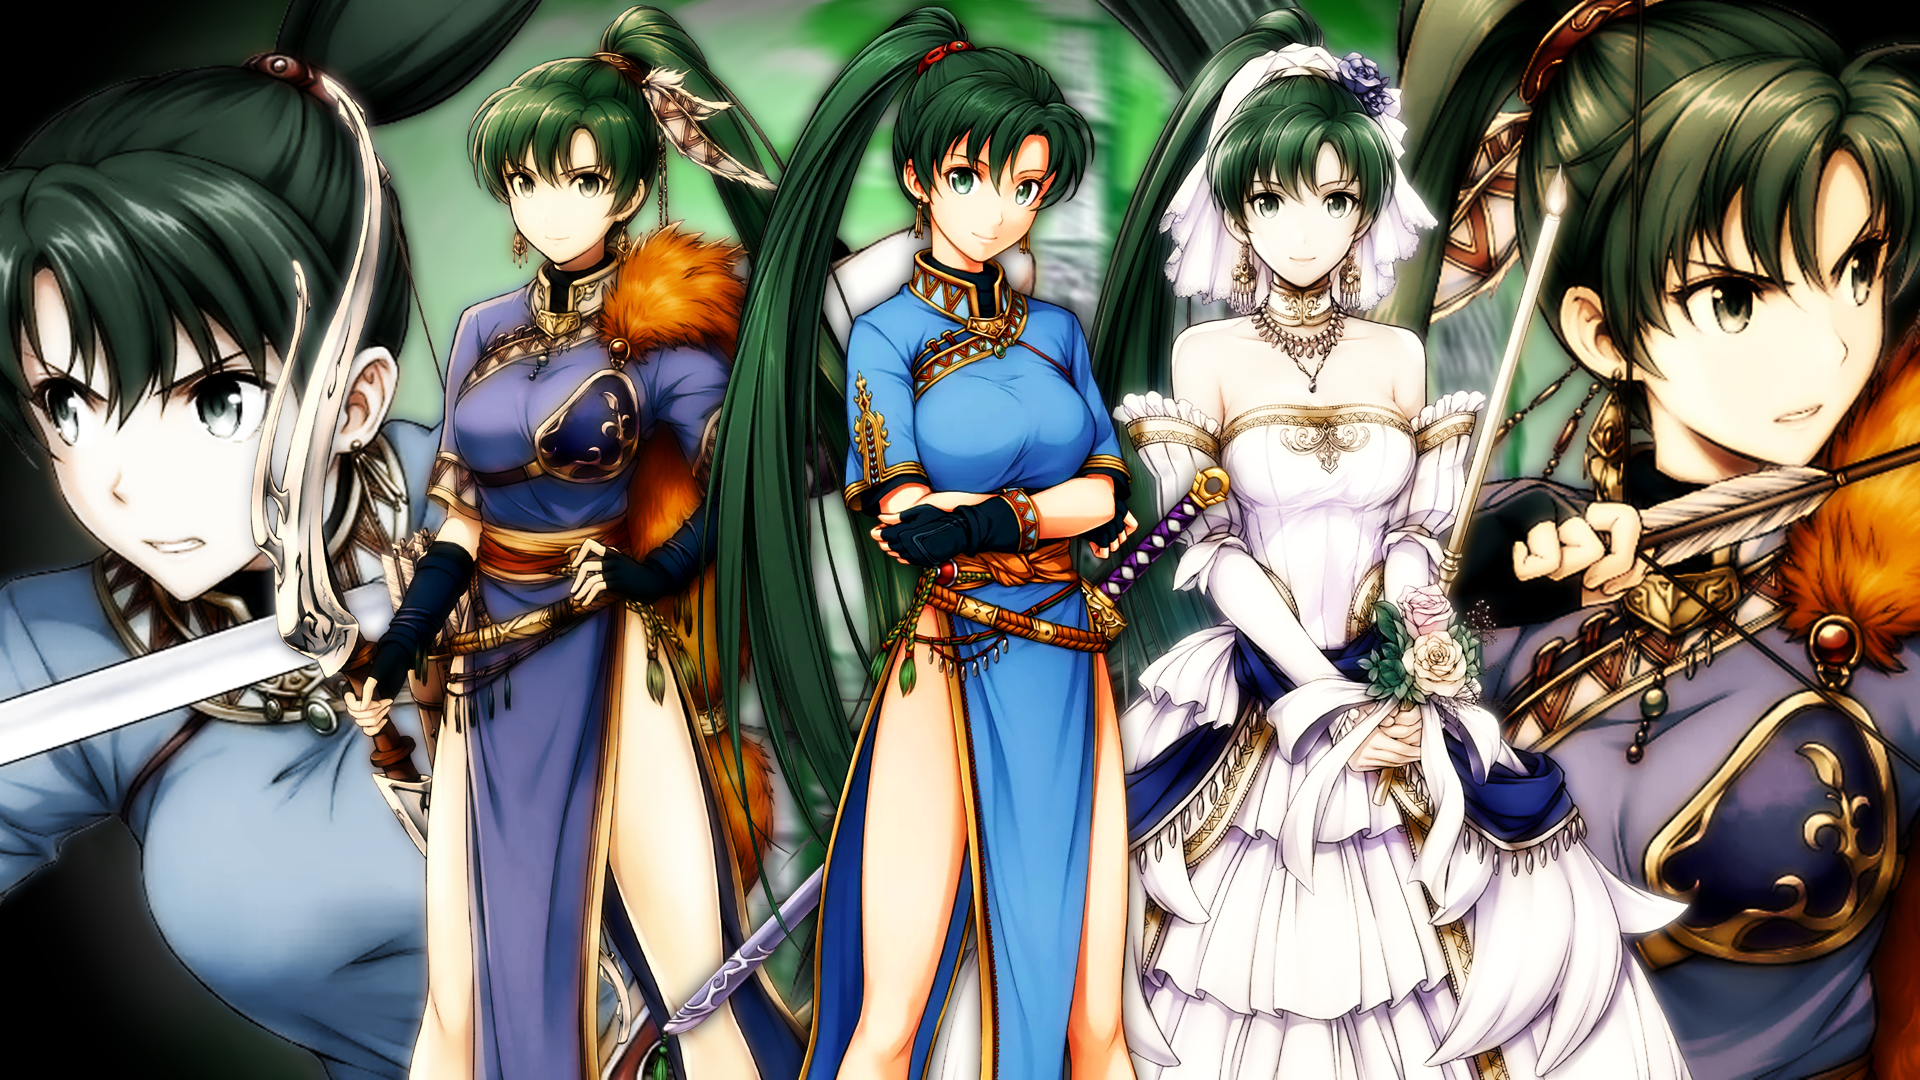 Fire Emblem Heroes Brave Heroes Lyn Wallpaper By Auroramaster On